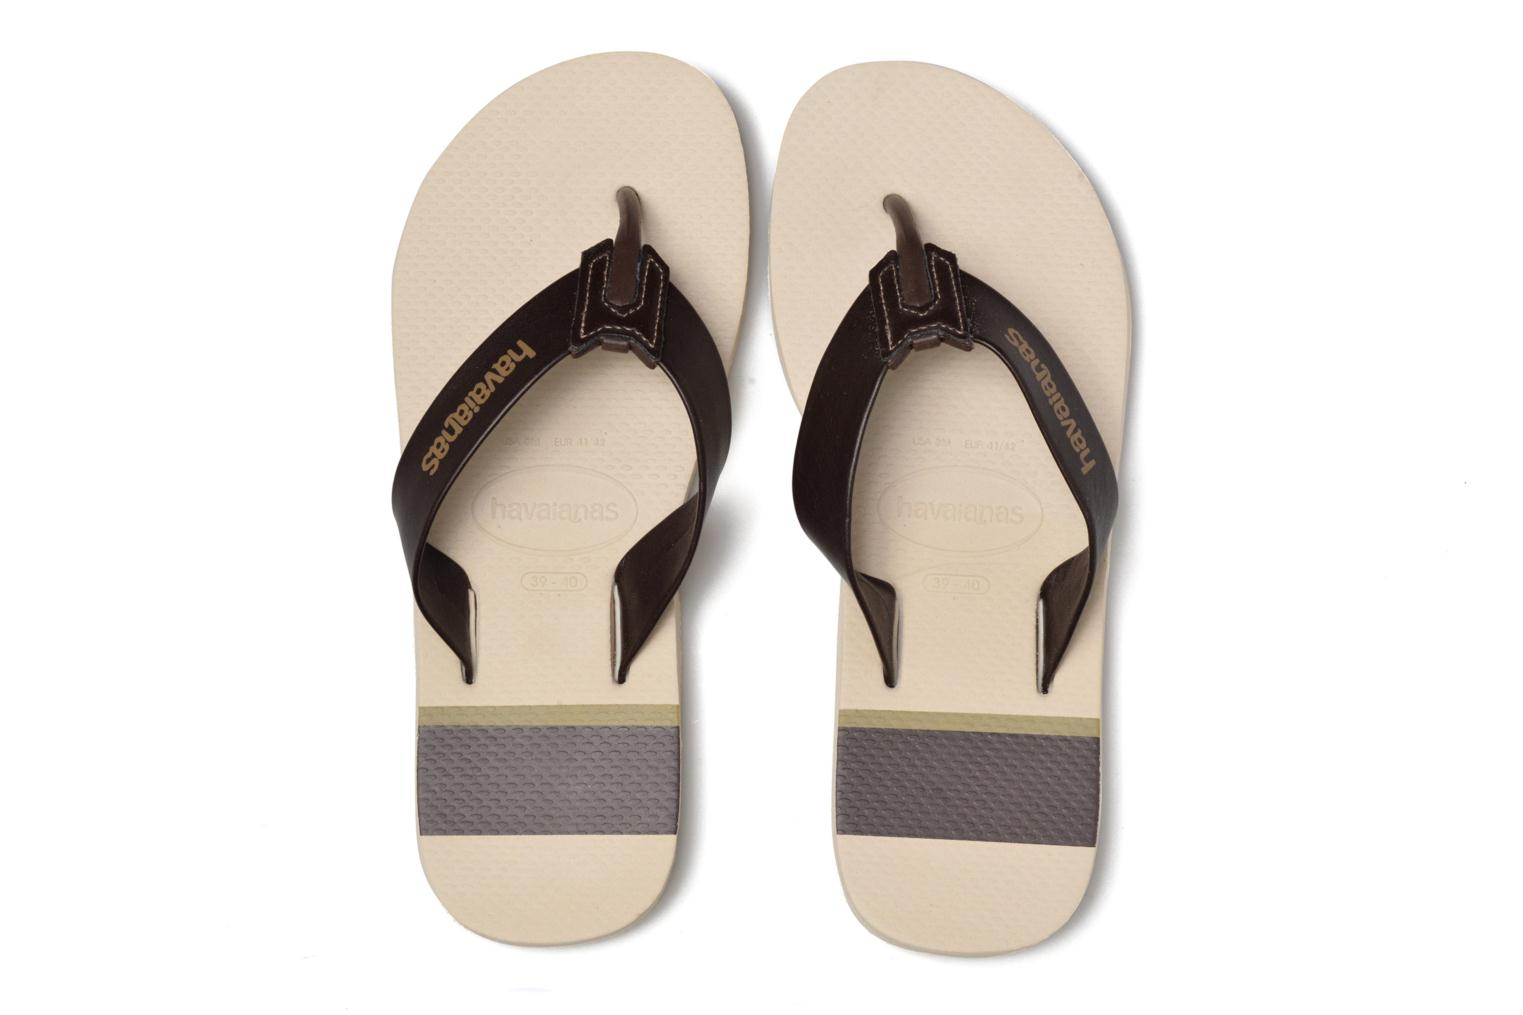 Chanclas Havaianas Urban Craft Beige vista 3/4